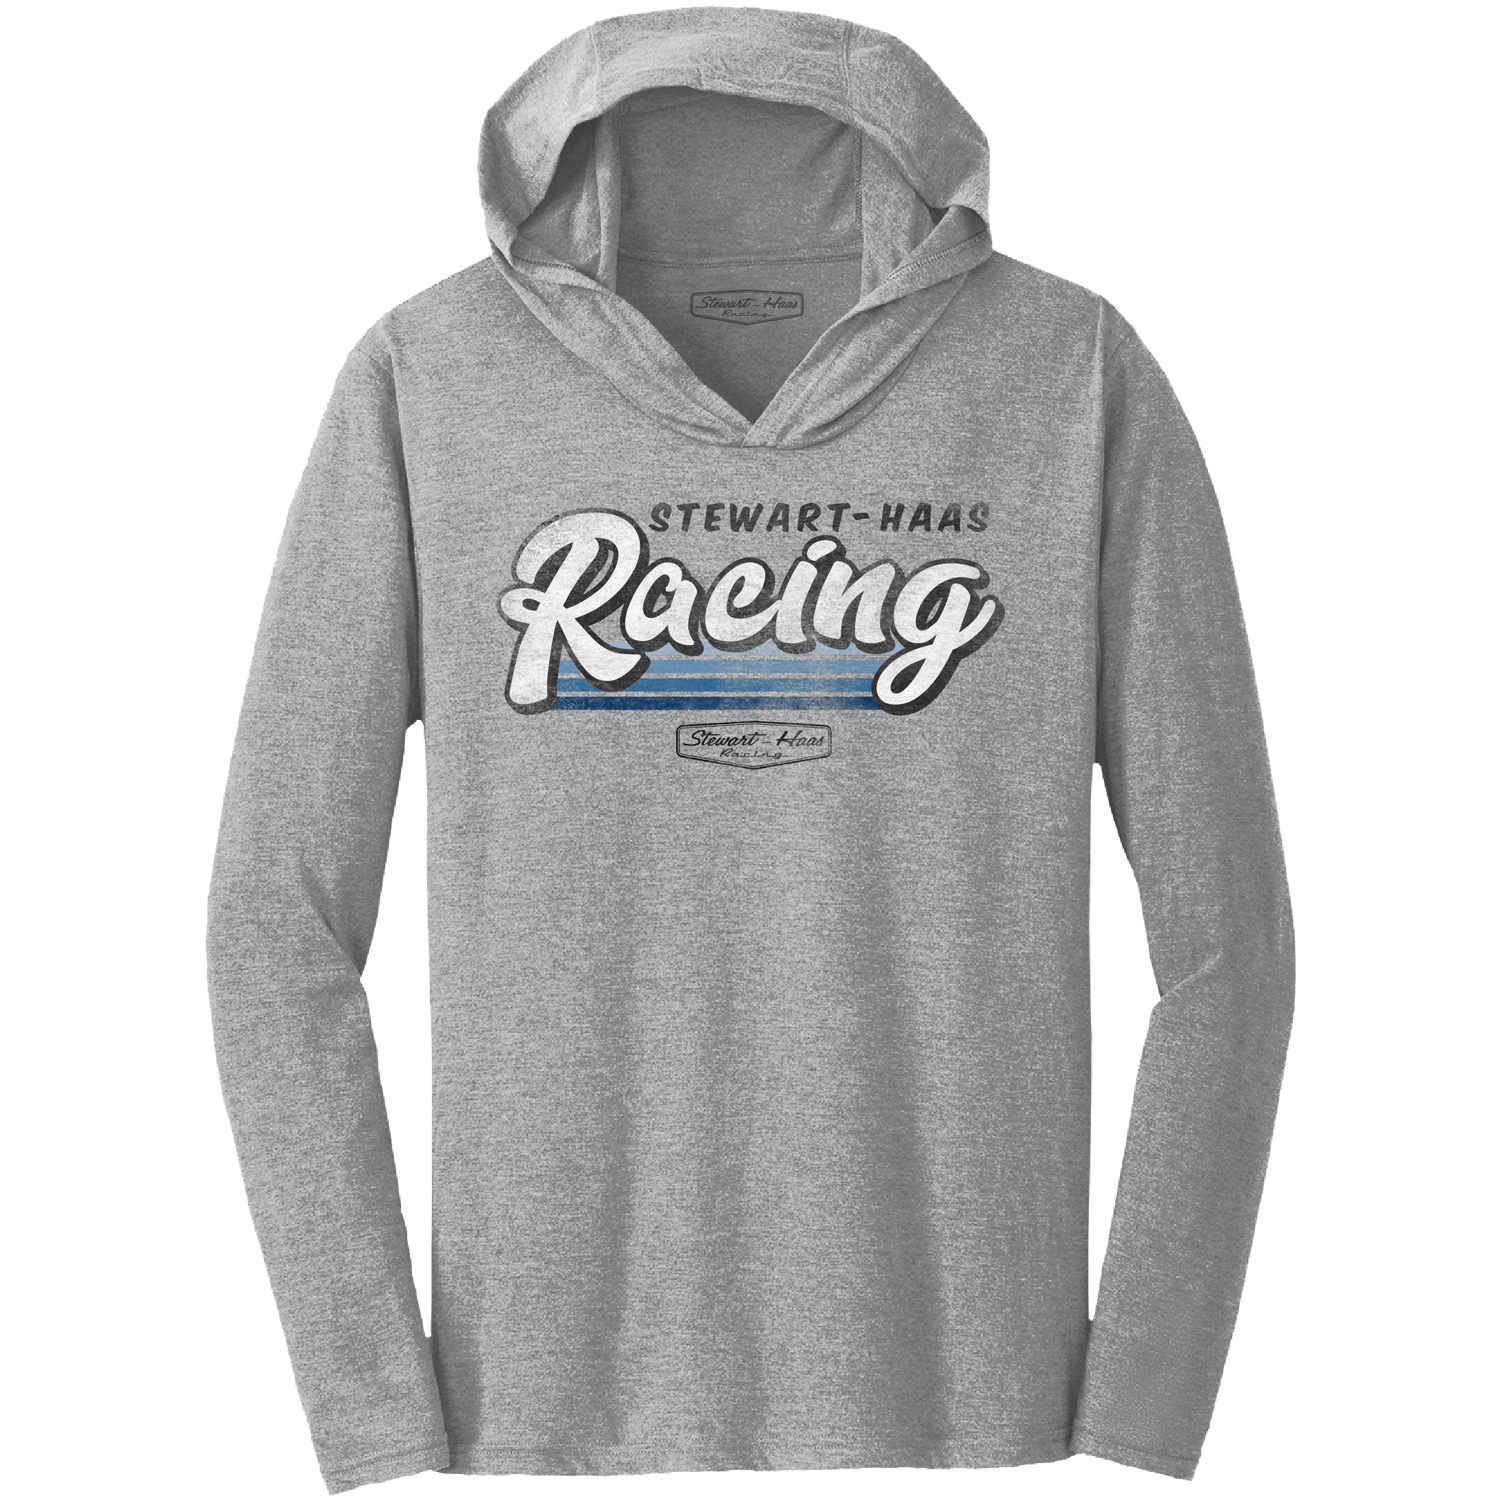 Exclusive Stewart-Haas Racing Ladies Long Sleeve Hoodie Shirt